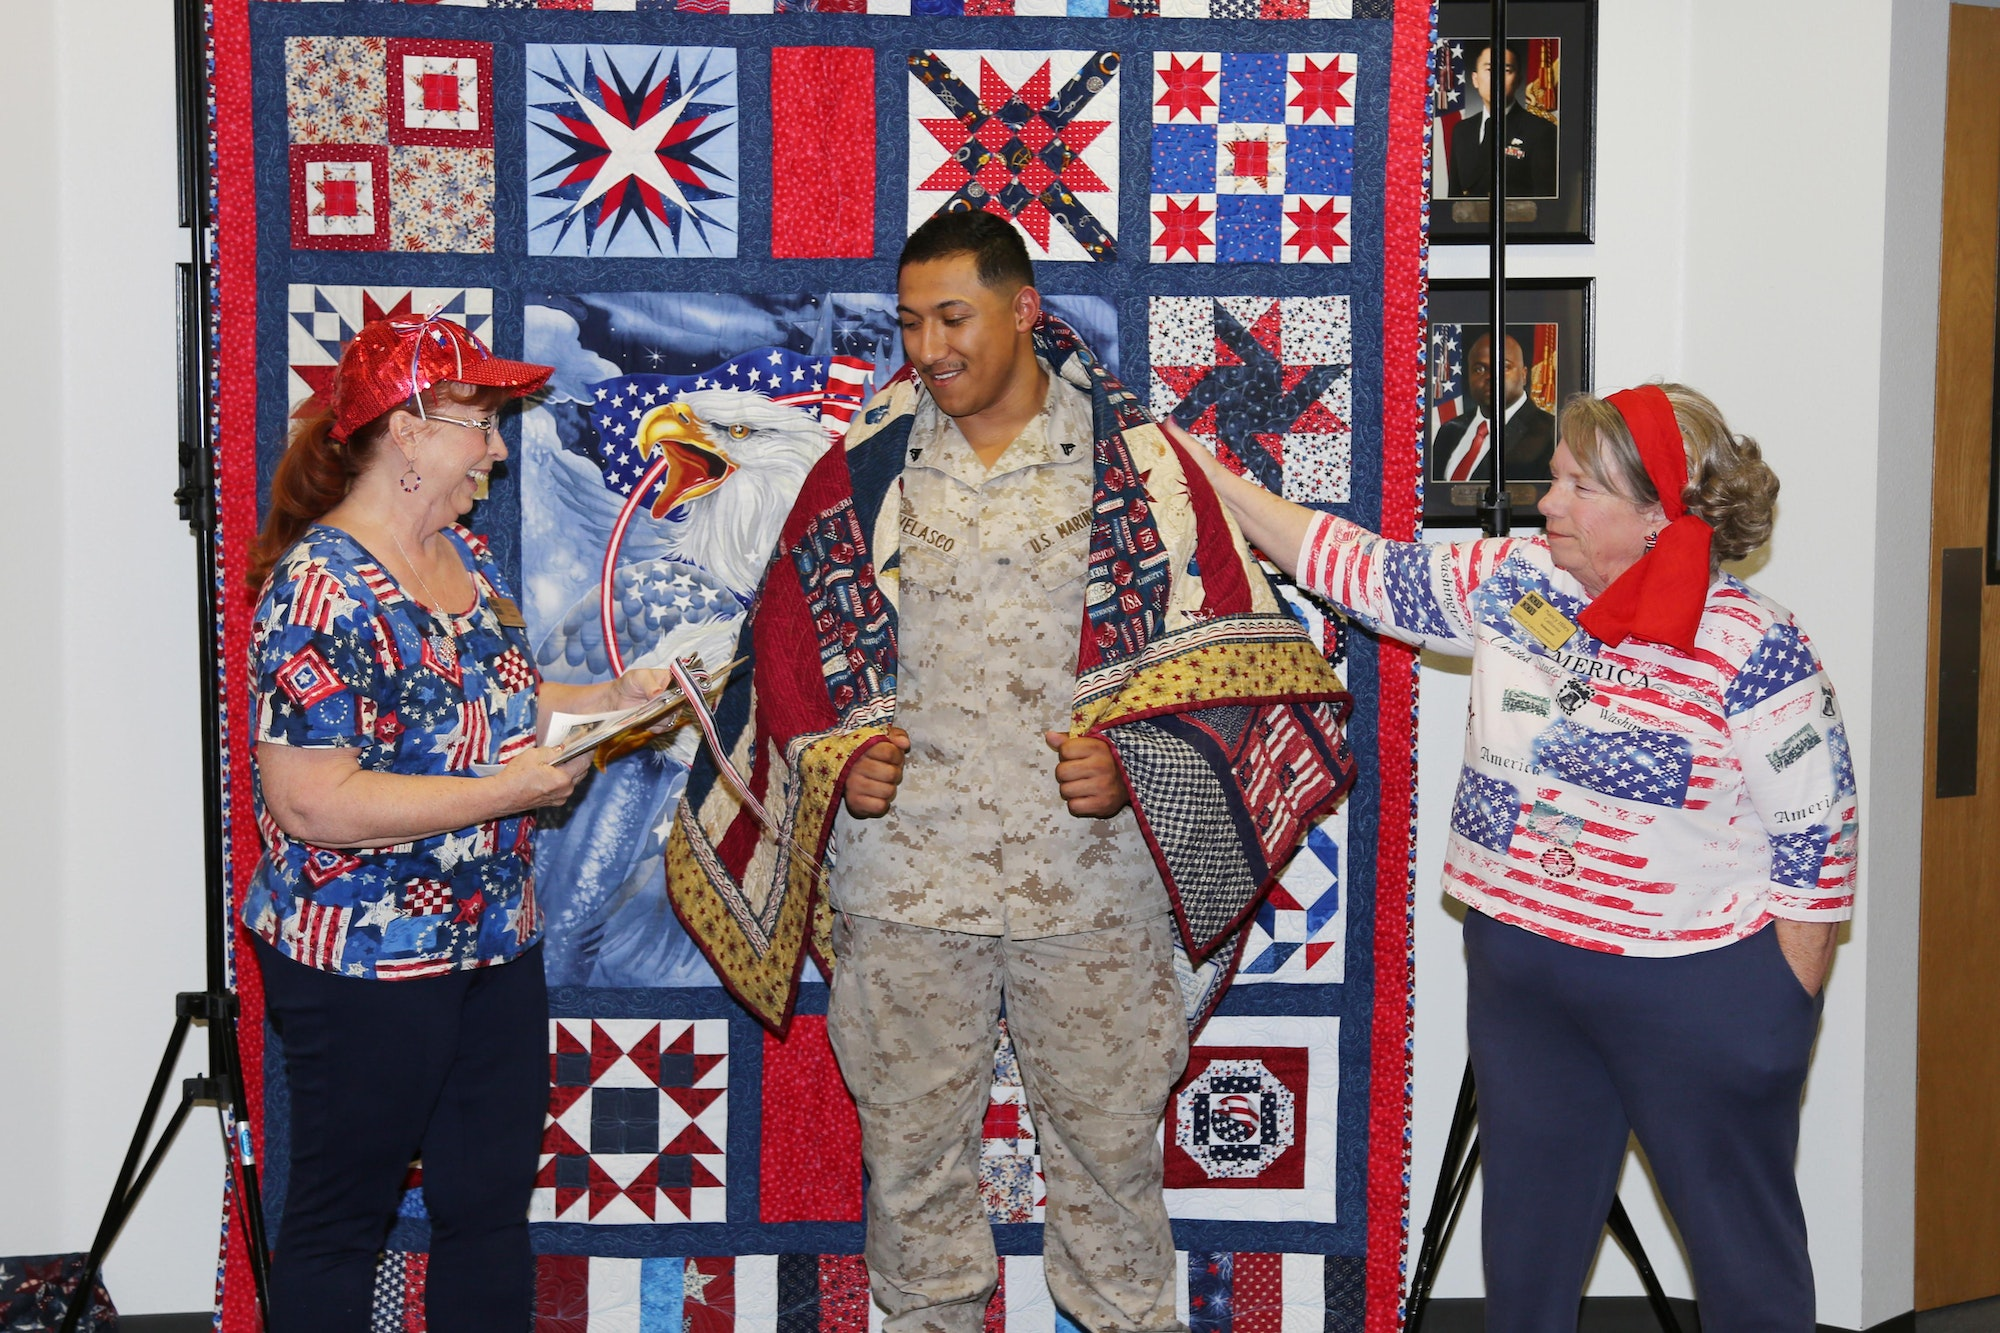 Two women beside soldier who has just received a quilt of valor quilt